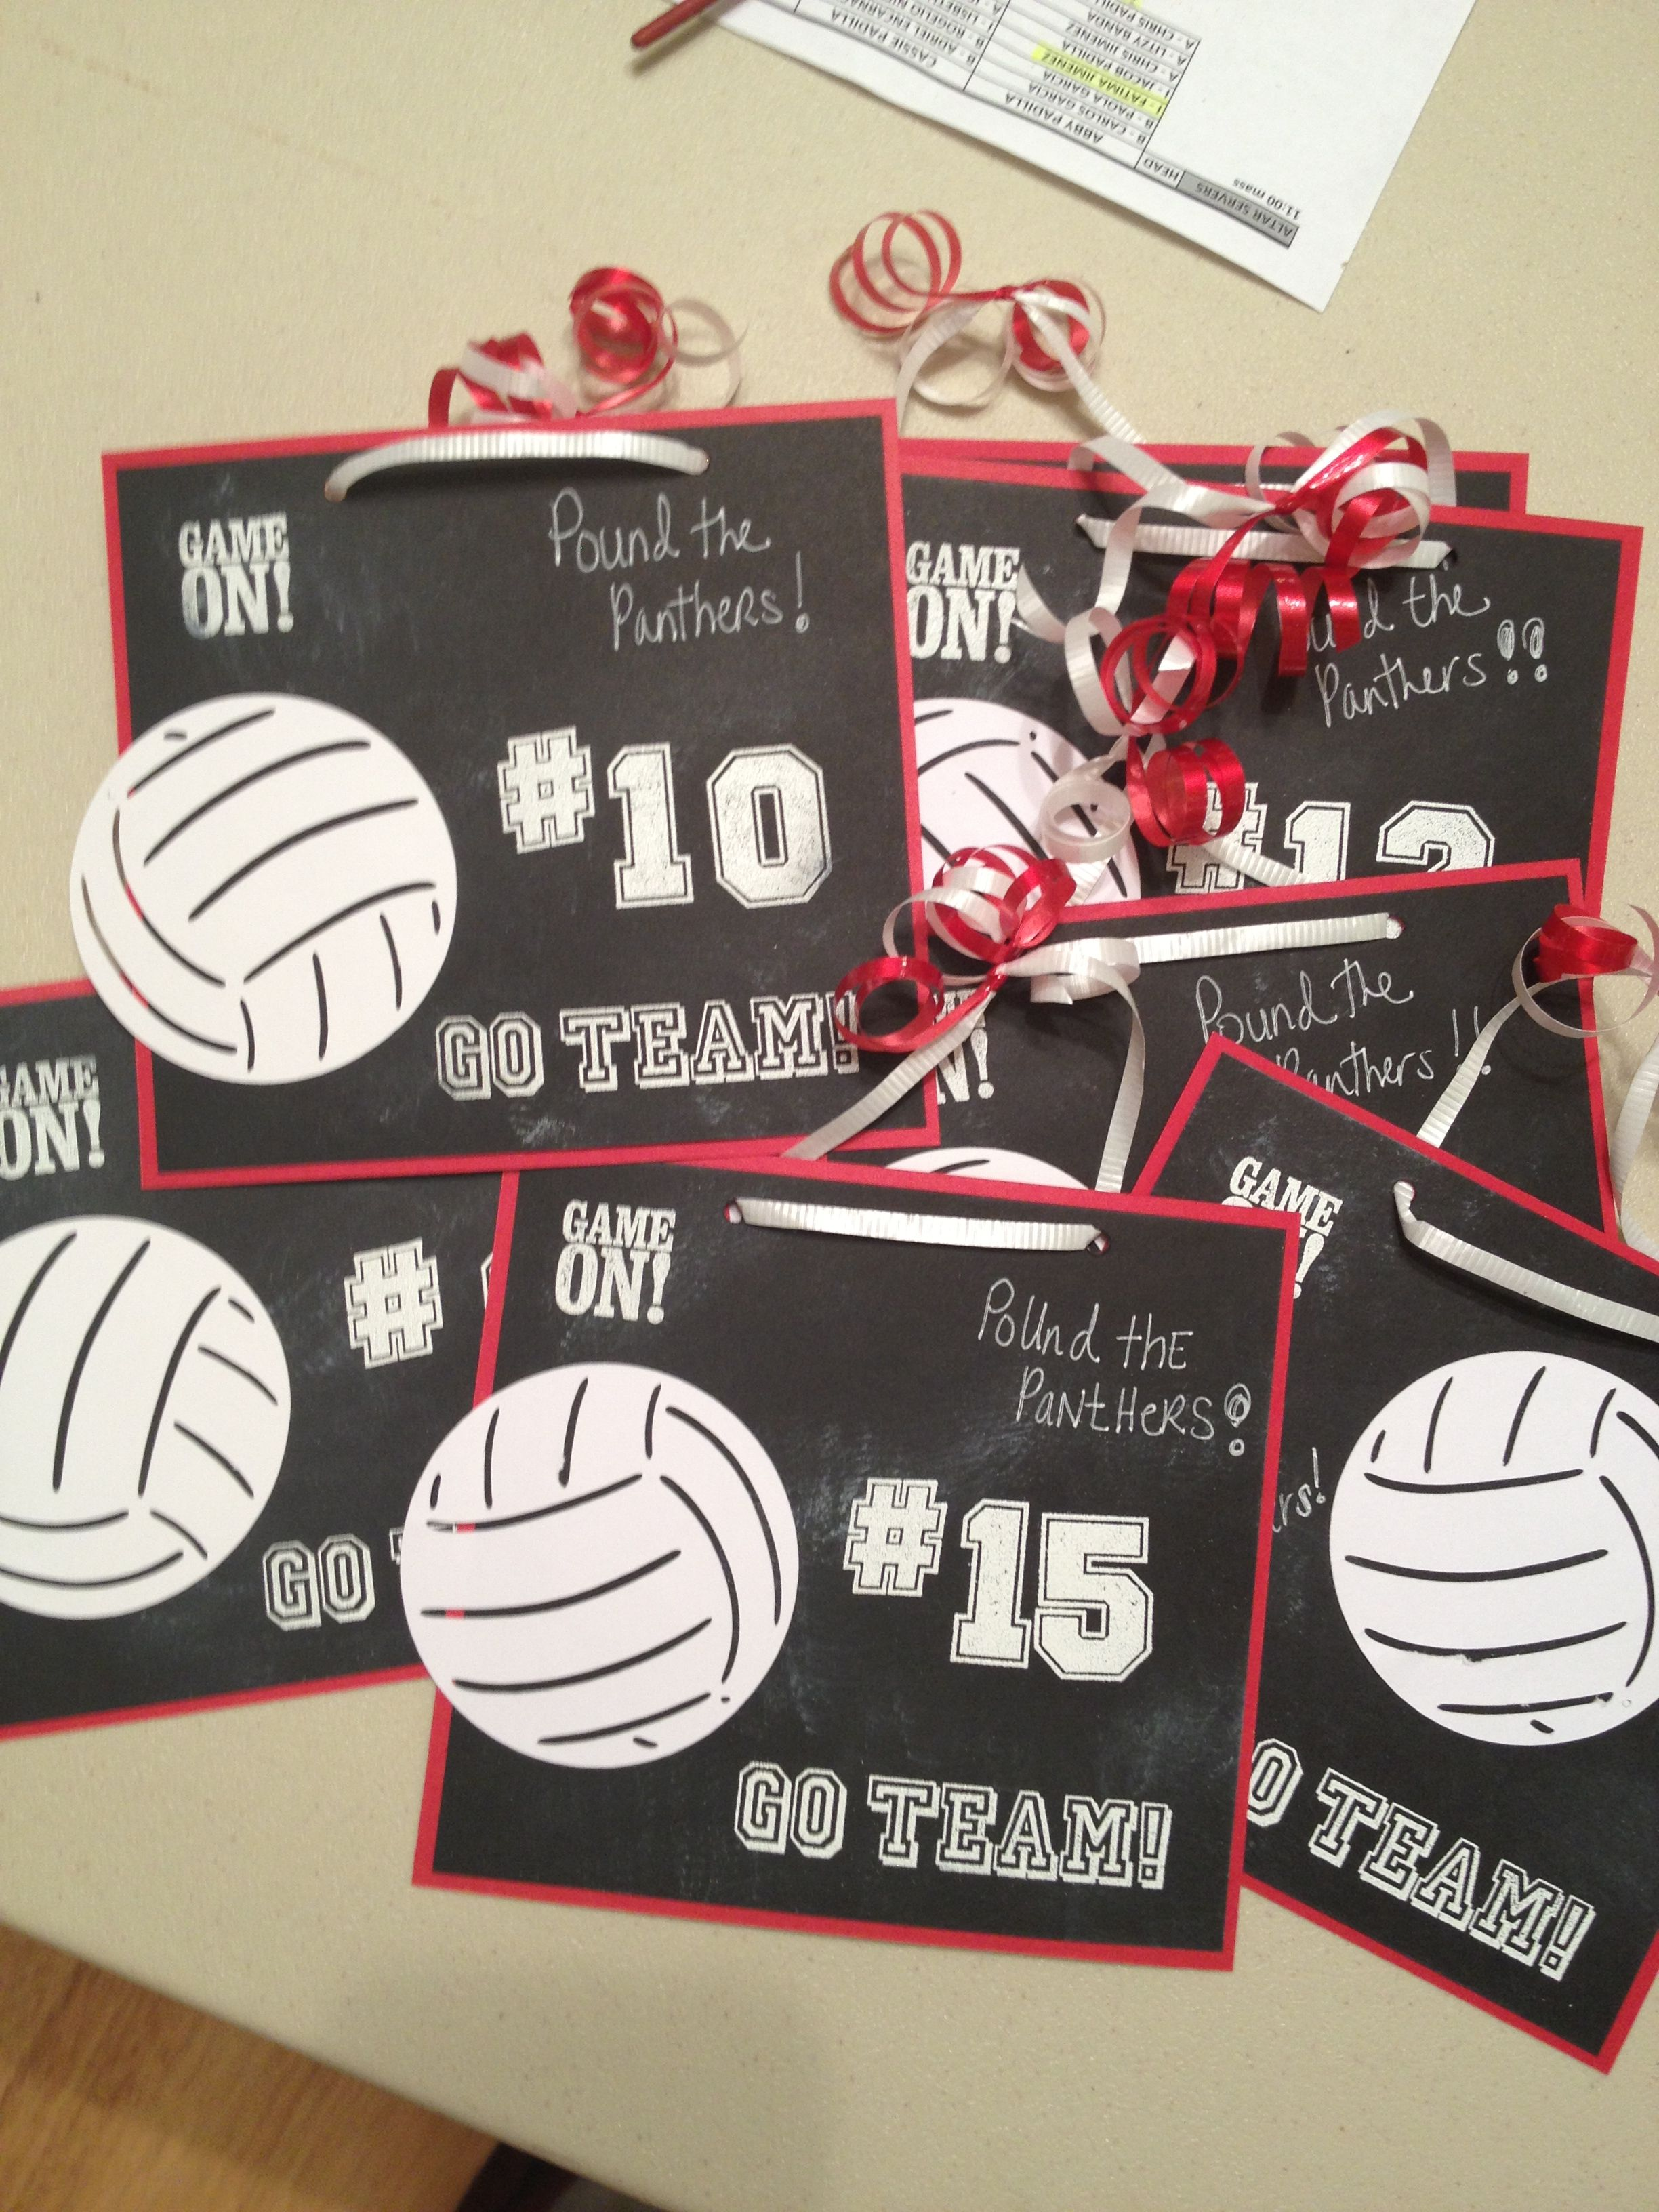 Volleyball Senior Night 2018 Poster For Defensive Specialist Volleyball Senior Night Gifts Volleyball Signs Volleyball Posters